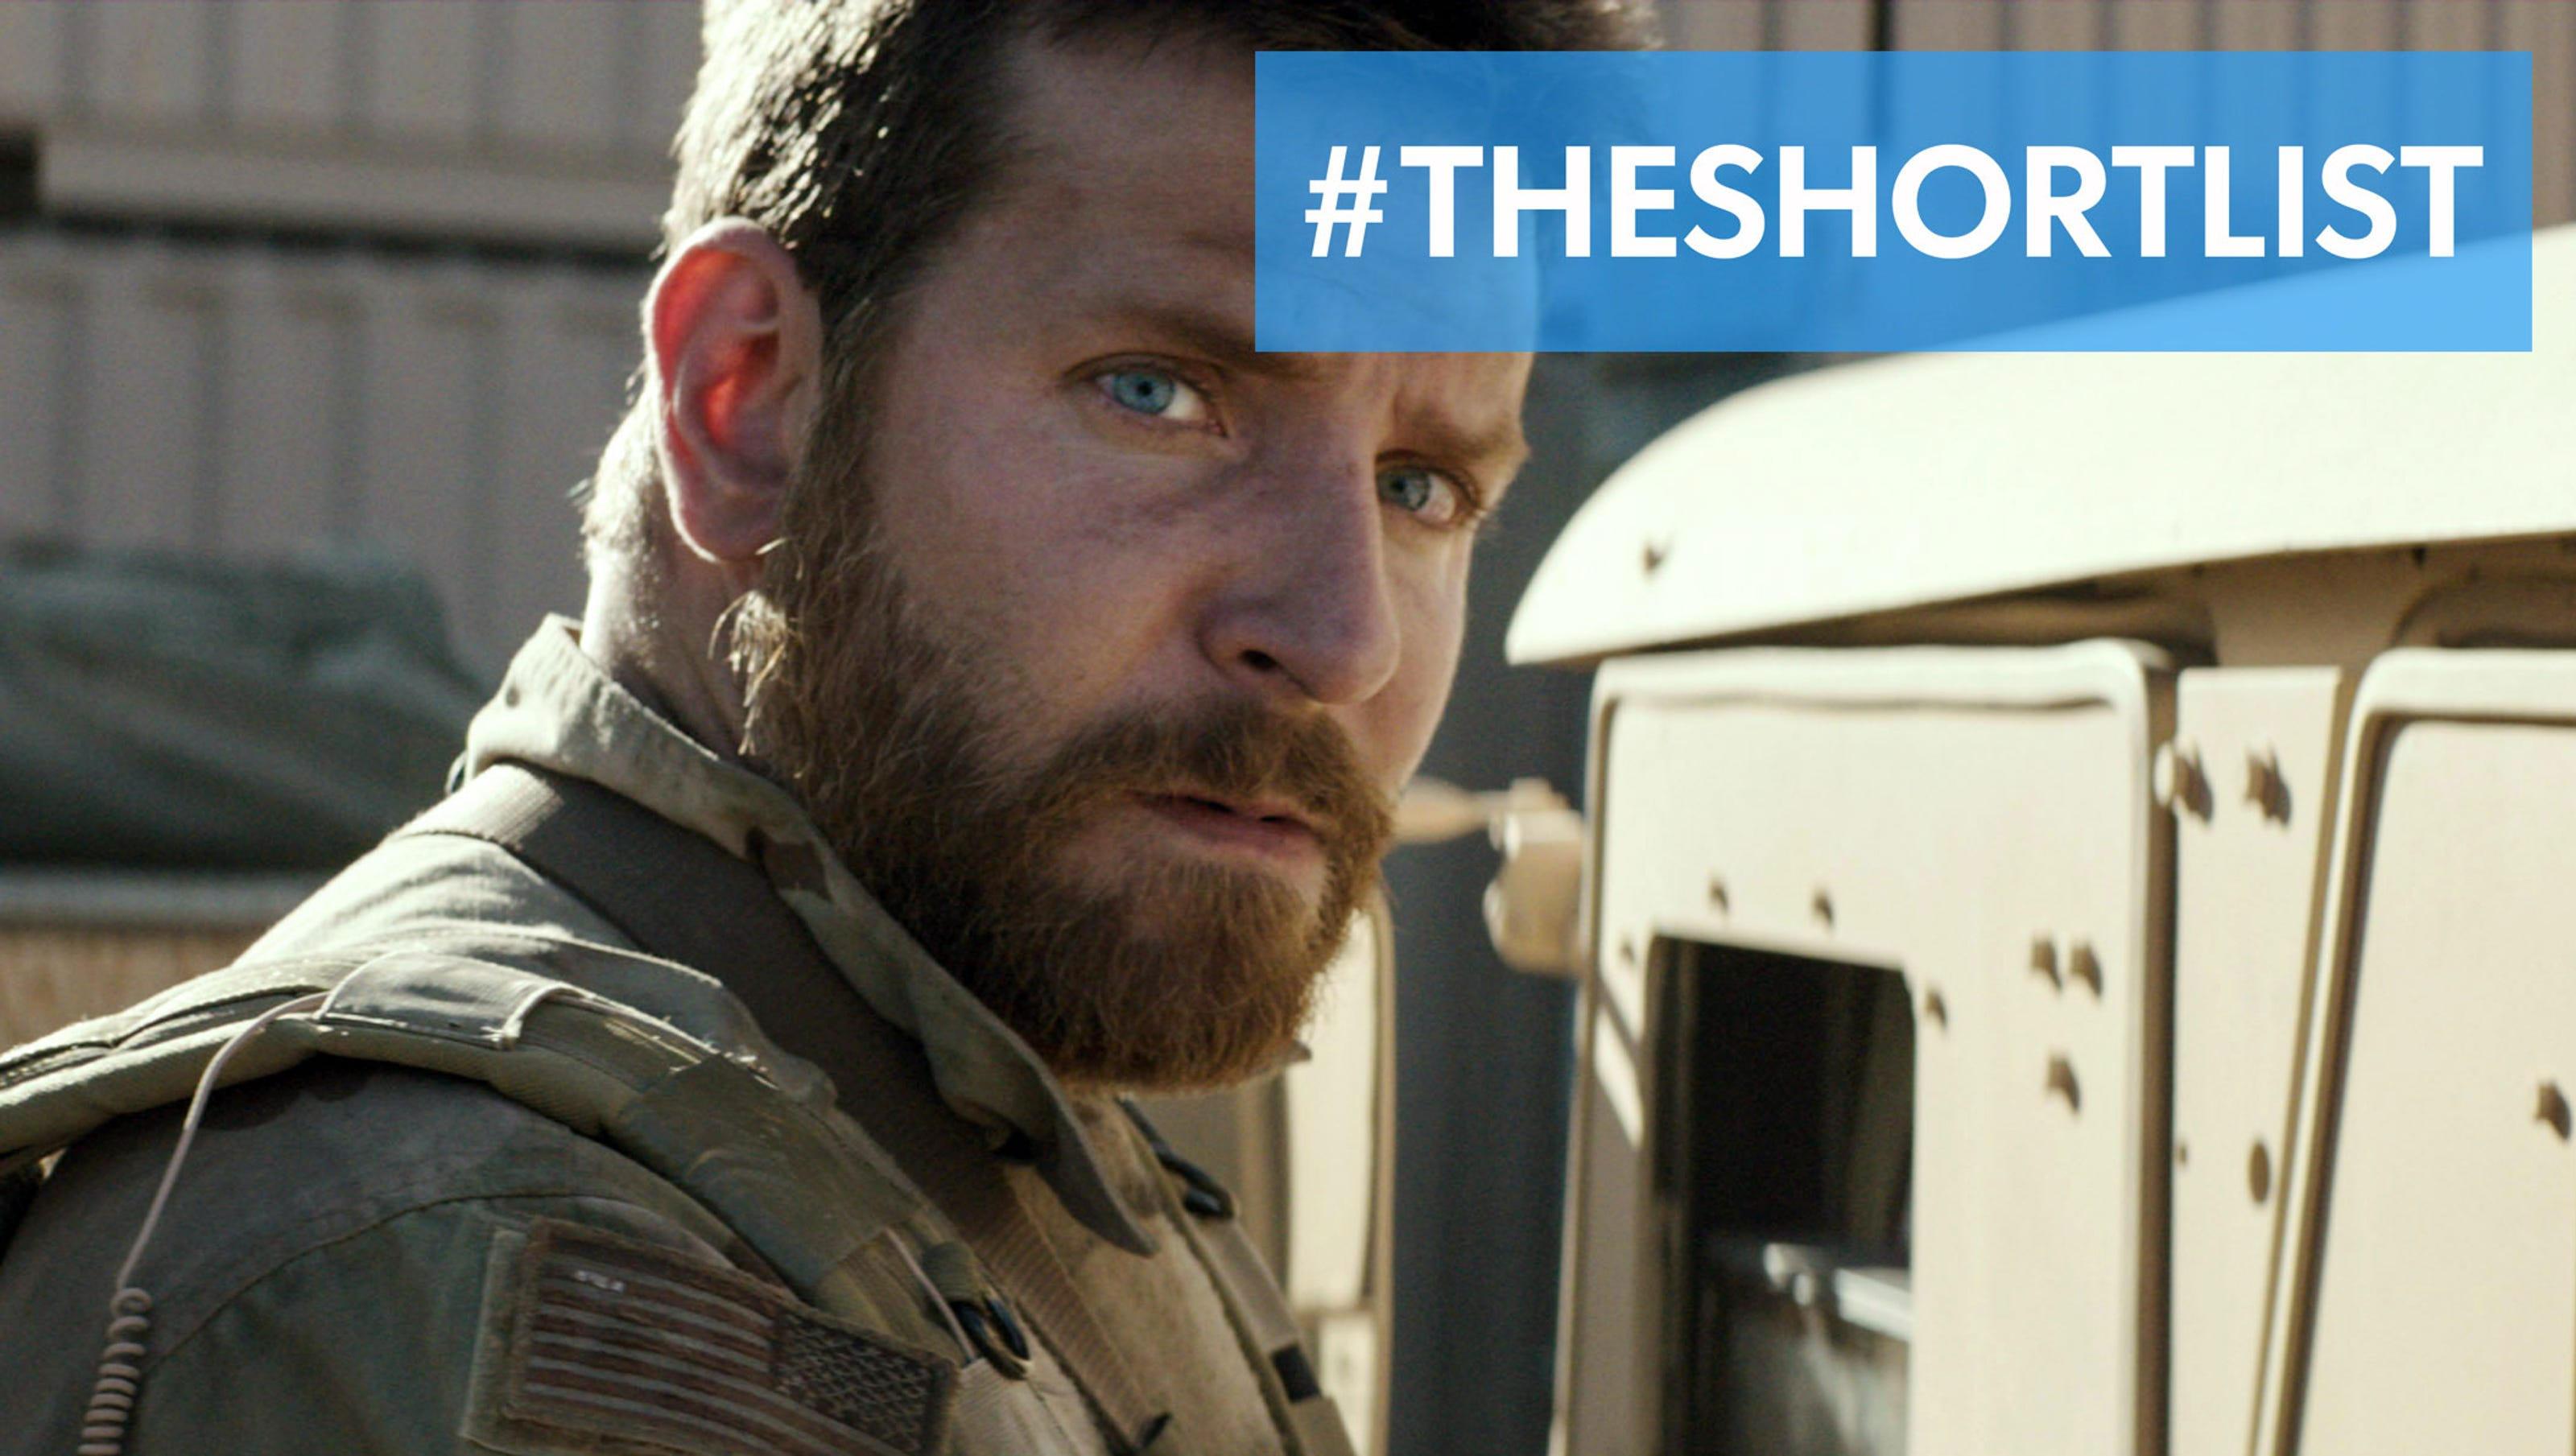 the short list: why some in hollywood think 'american sniper' is pro-war